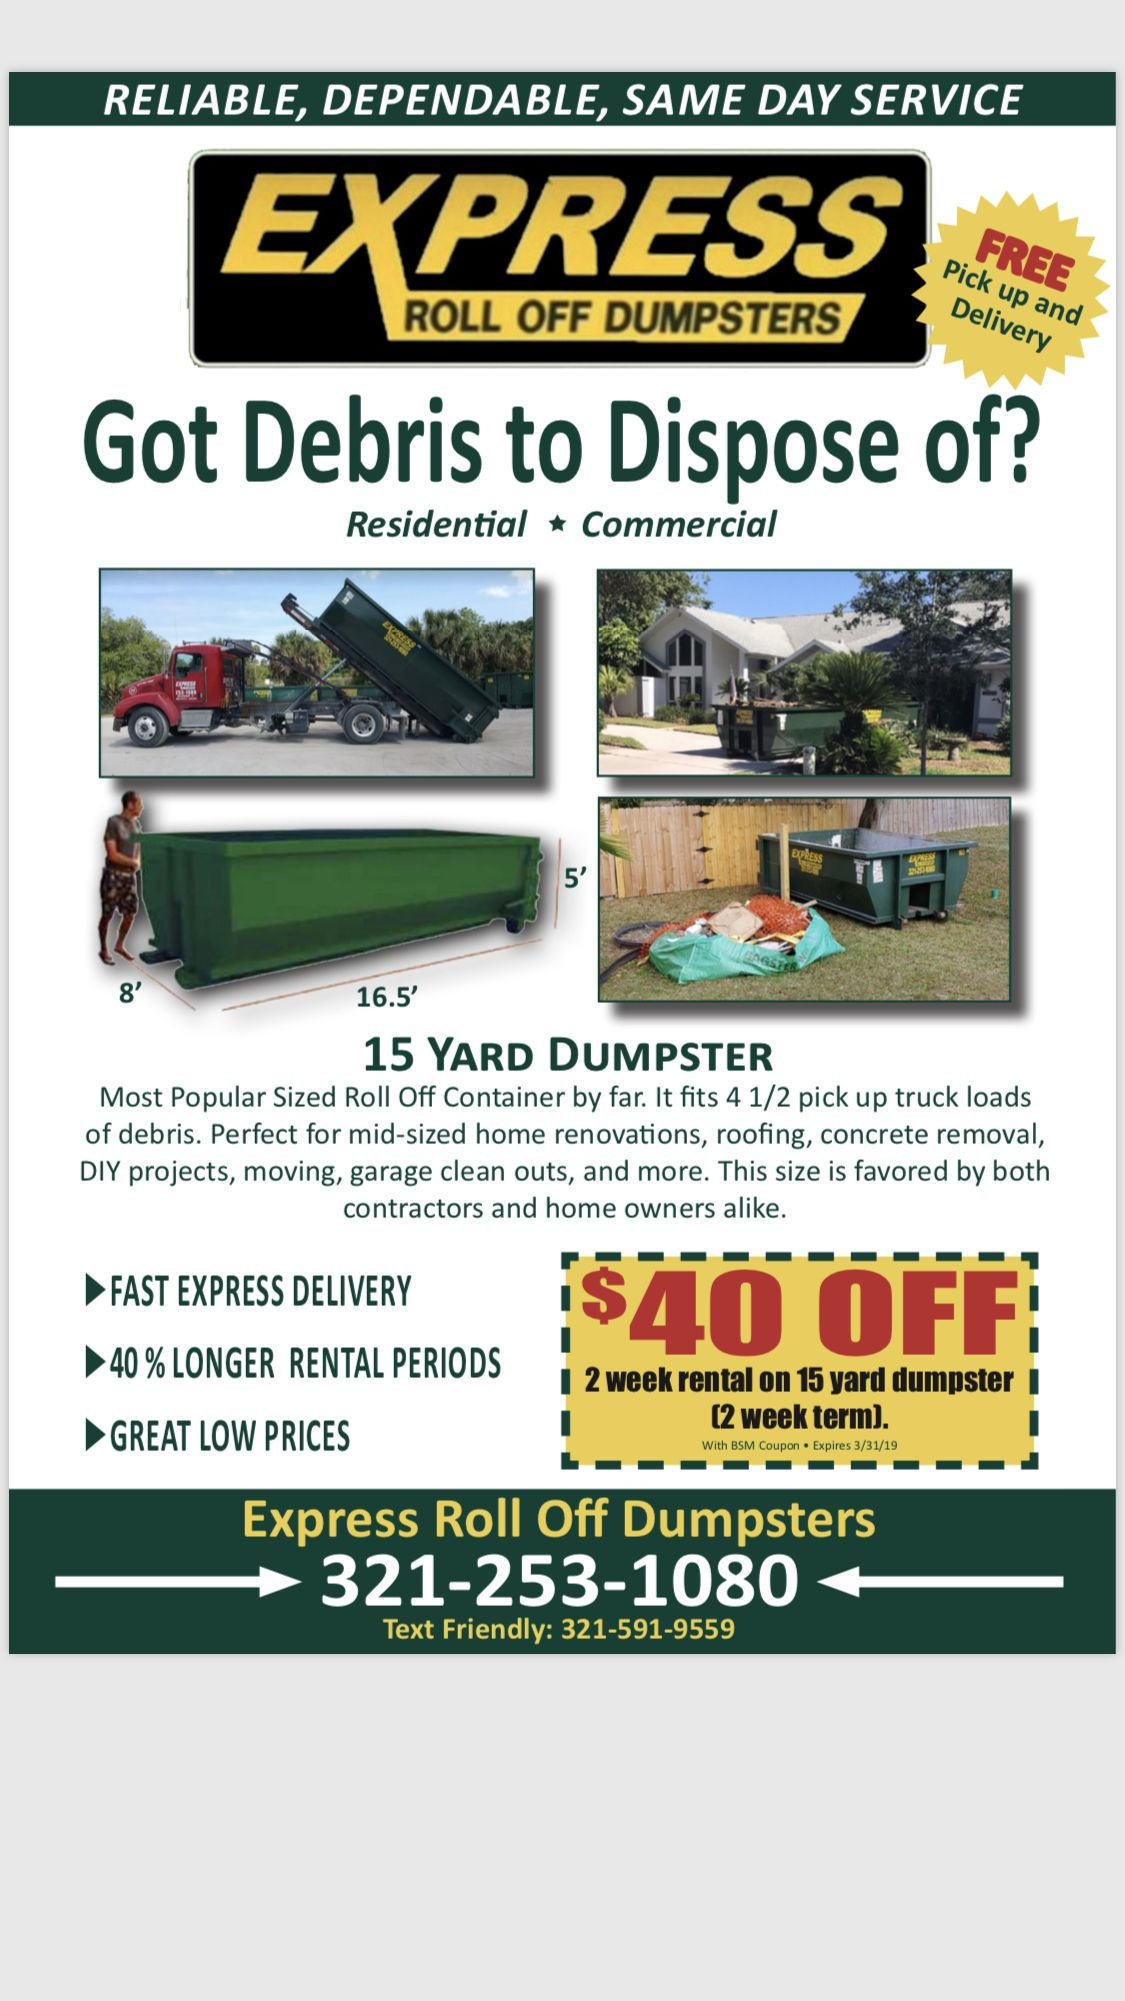 Cheap Dumpster Rental Roll Off Dumpster Prices Express Roll Off Roll Off Dumpster Dumpster Rental Dumpster